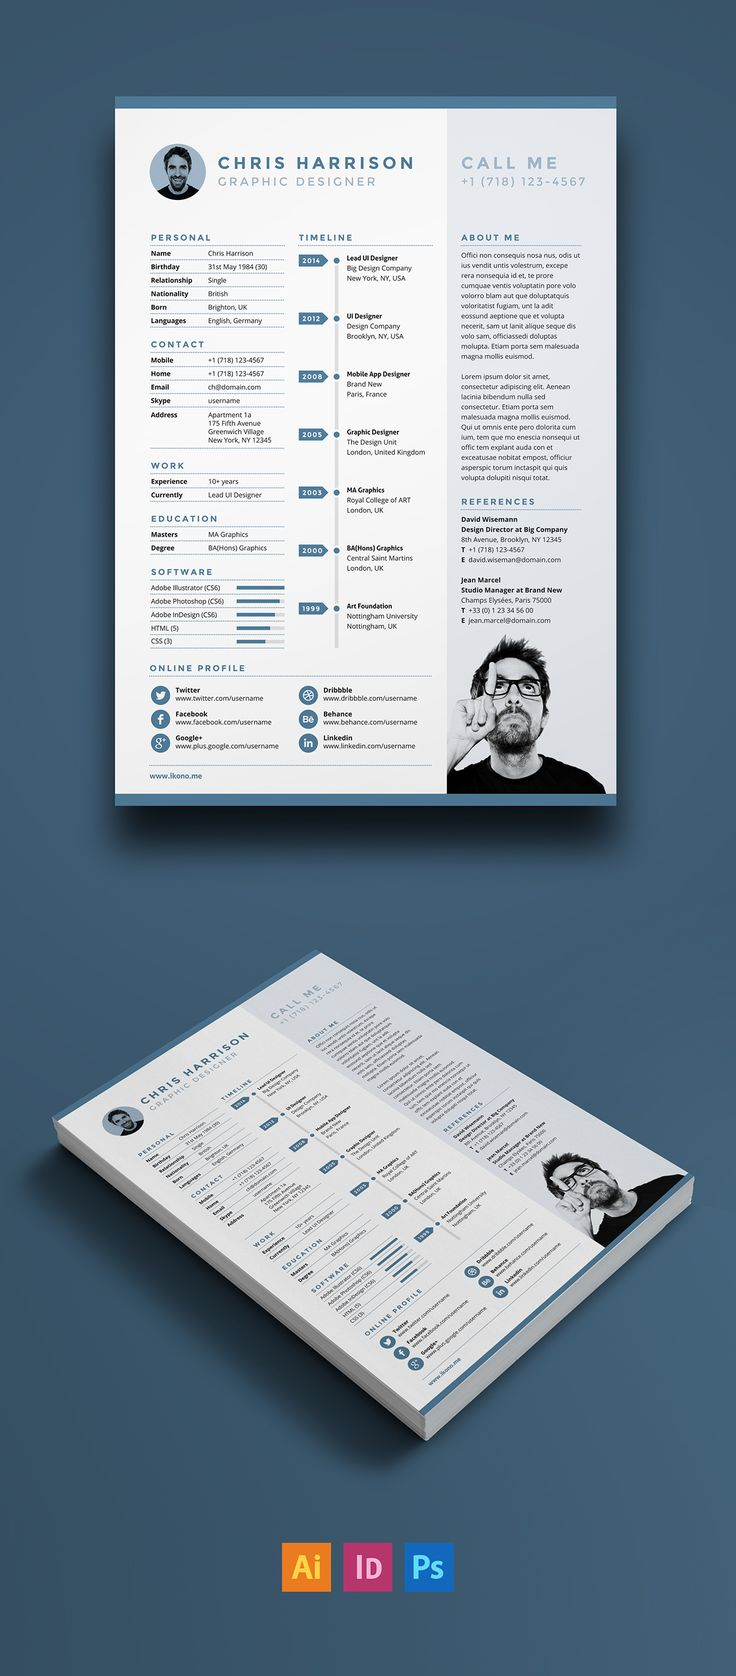 Best Cv Images On   Resume Curriculum And Resume Design